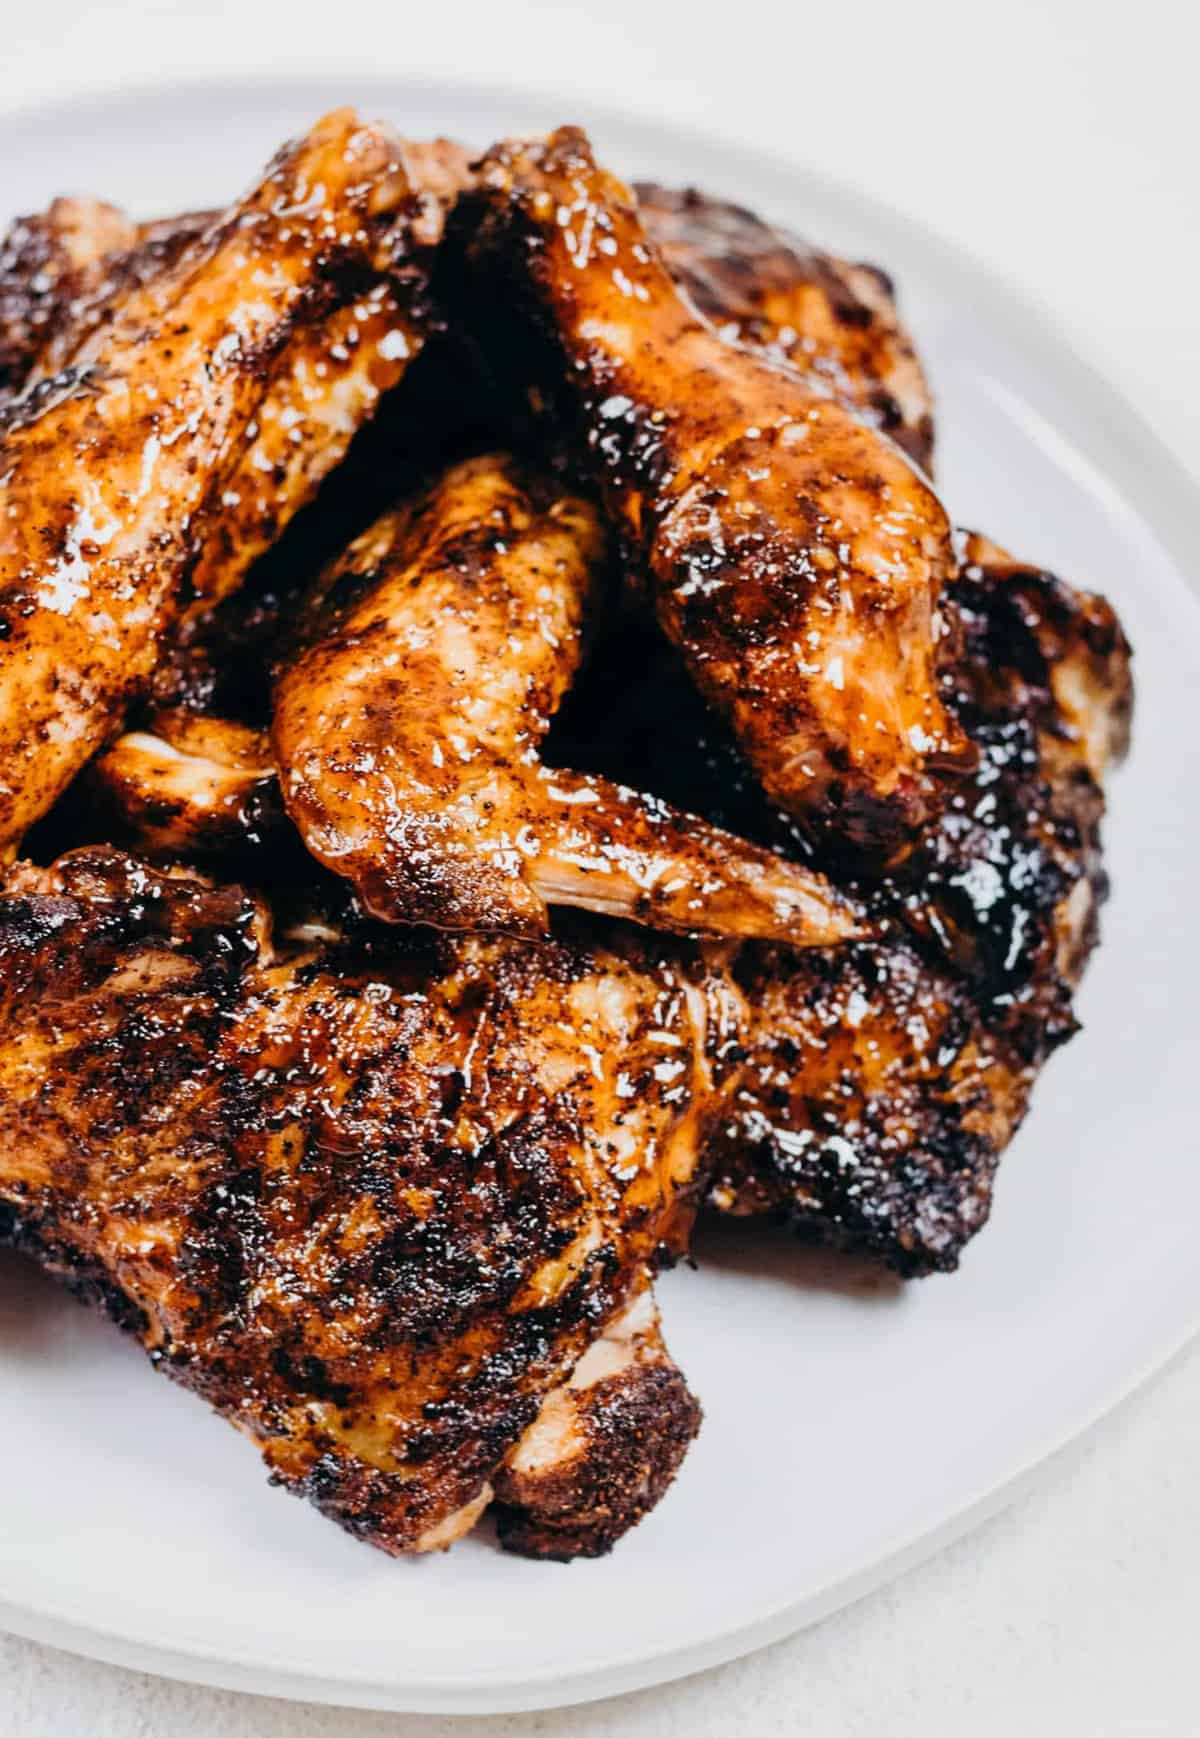 Close up of grilled bbq chicken